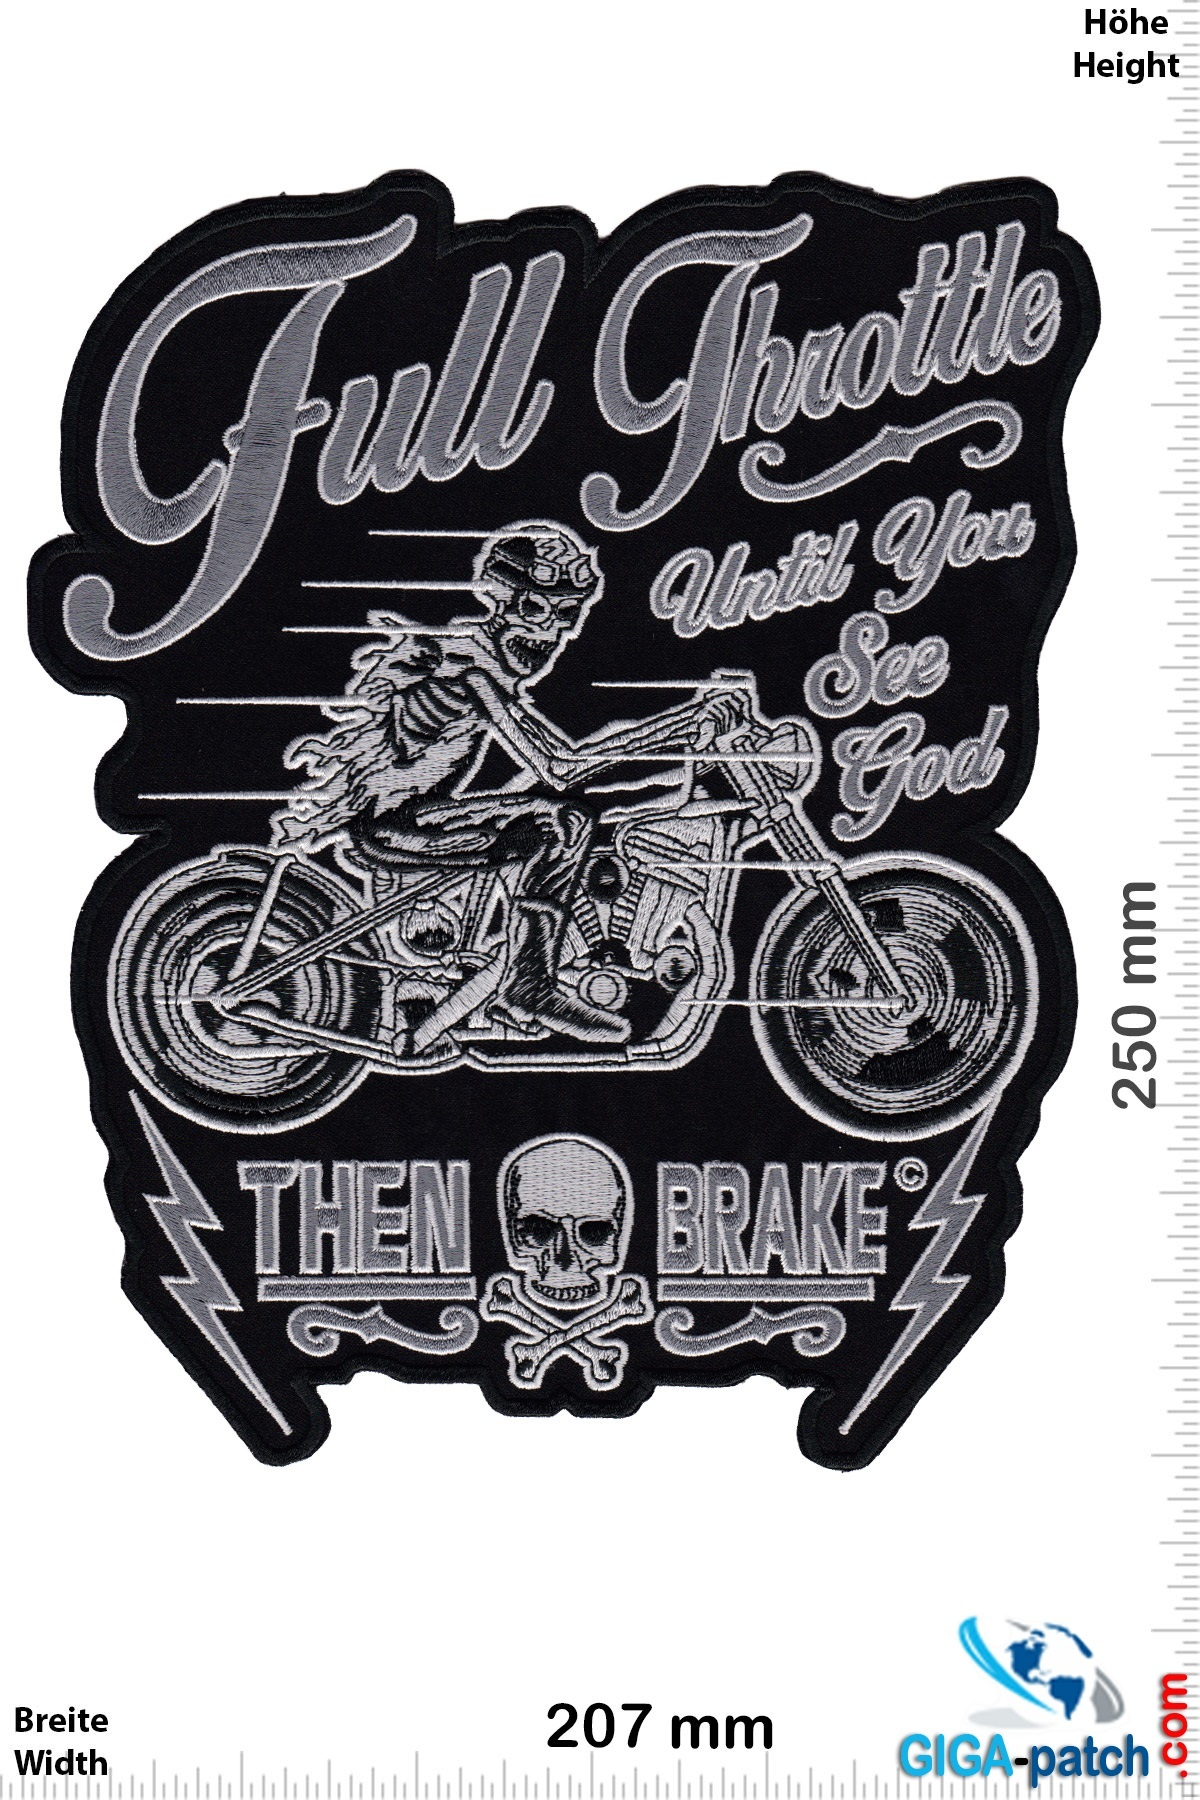 Full Throttle until you see god - Then Brake -25 cm